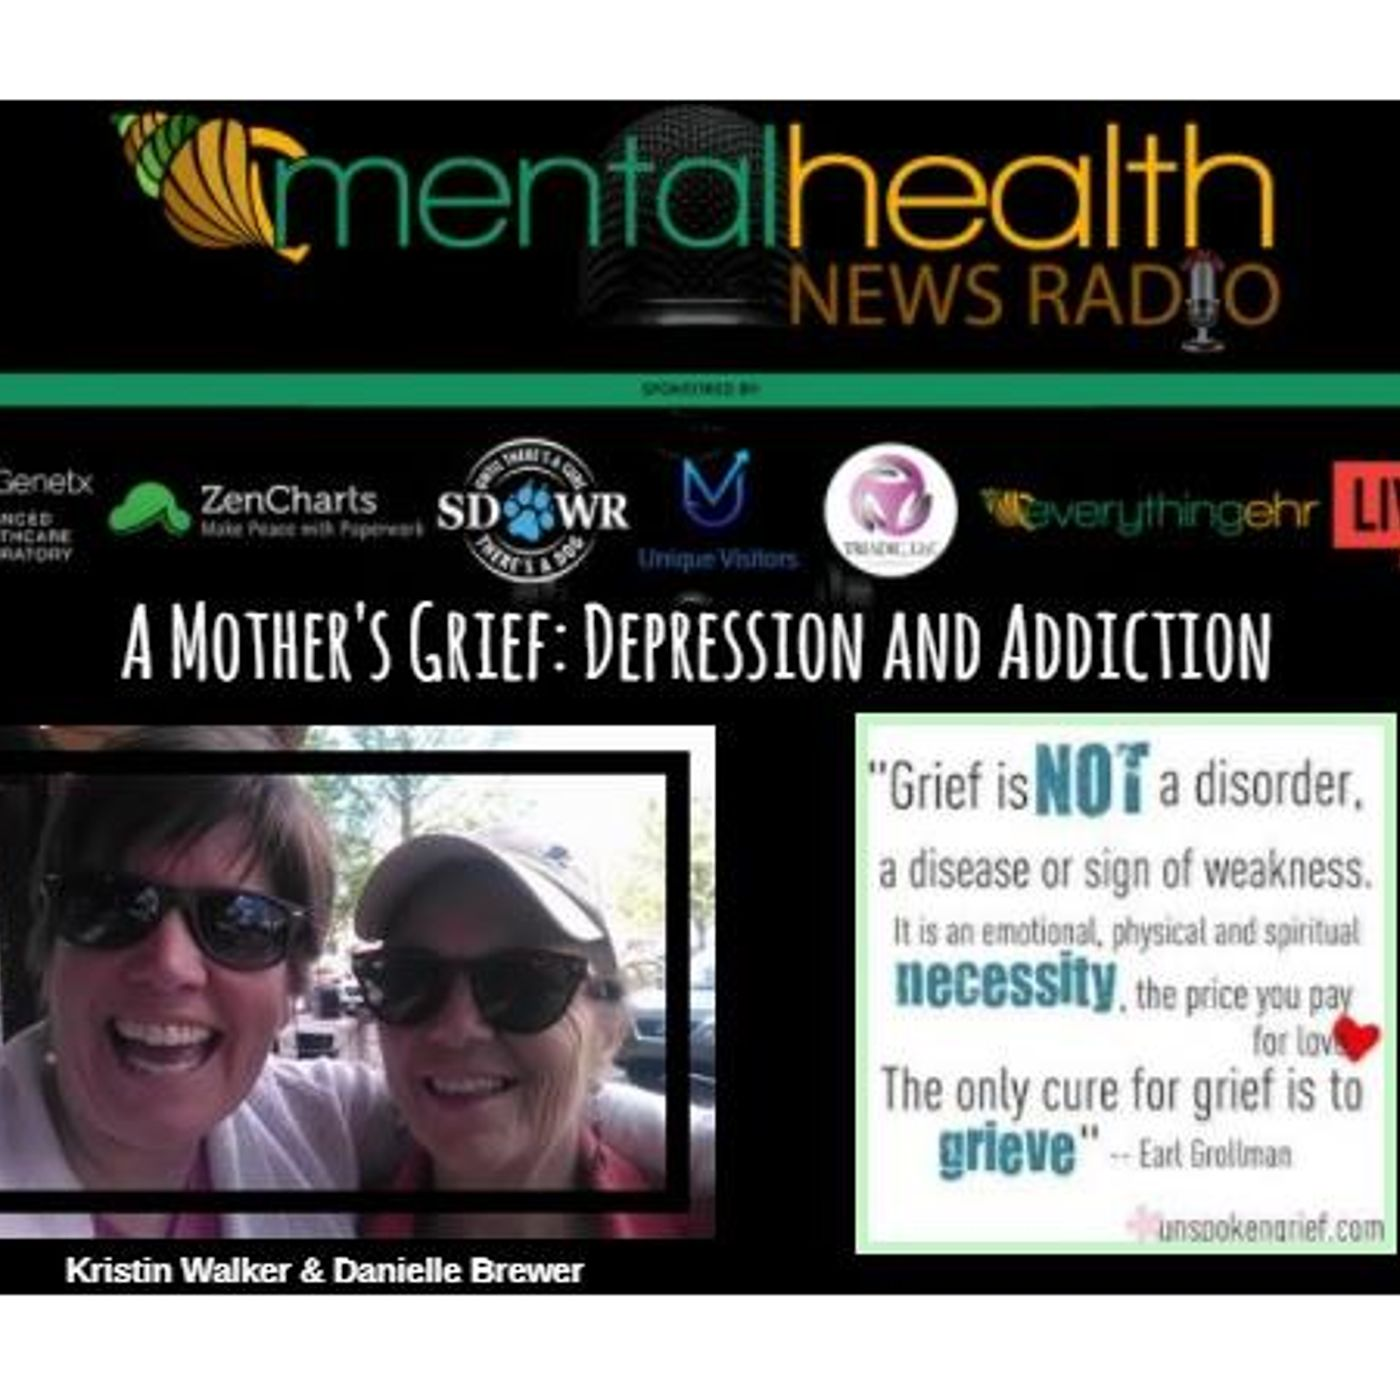 Mental Health News Radio - A Mother's Grief: Depression and Addiction with Danielle Brewer